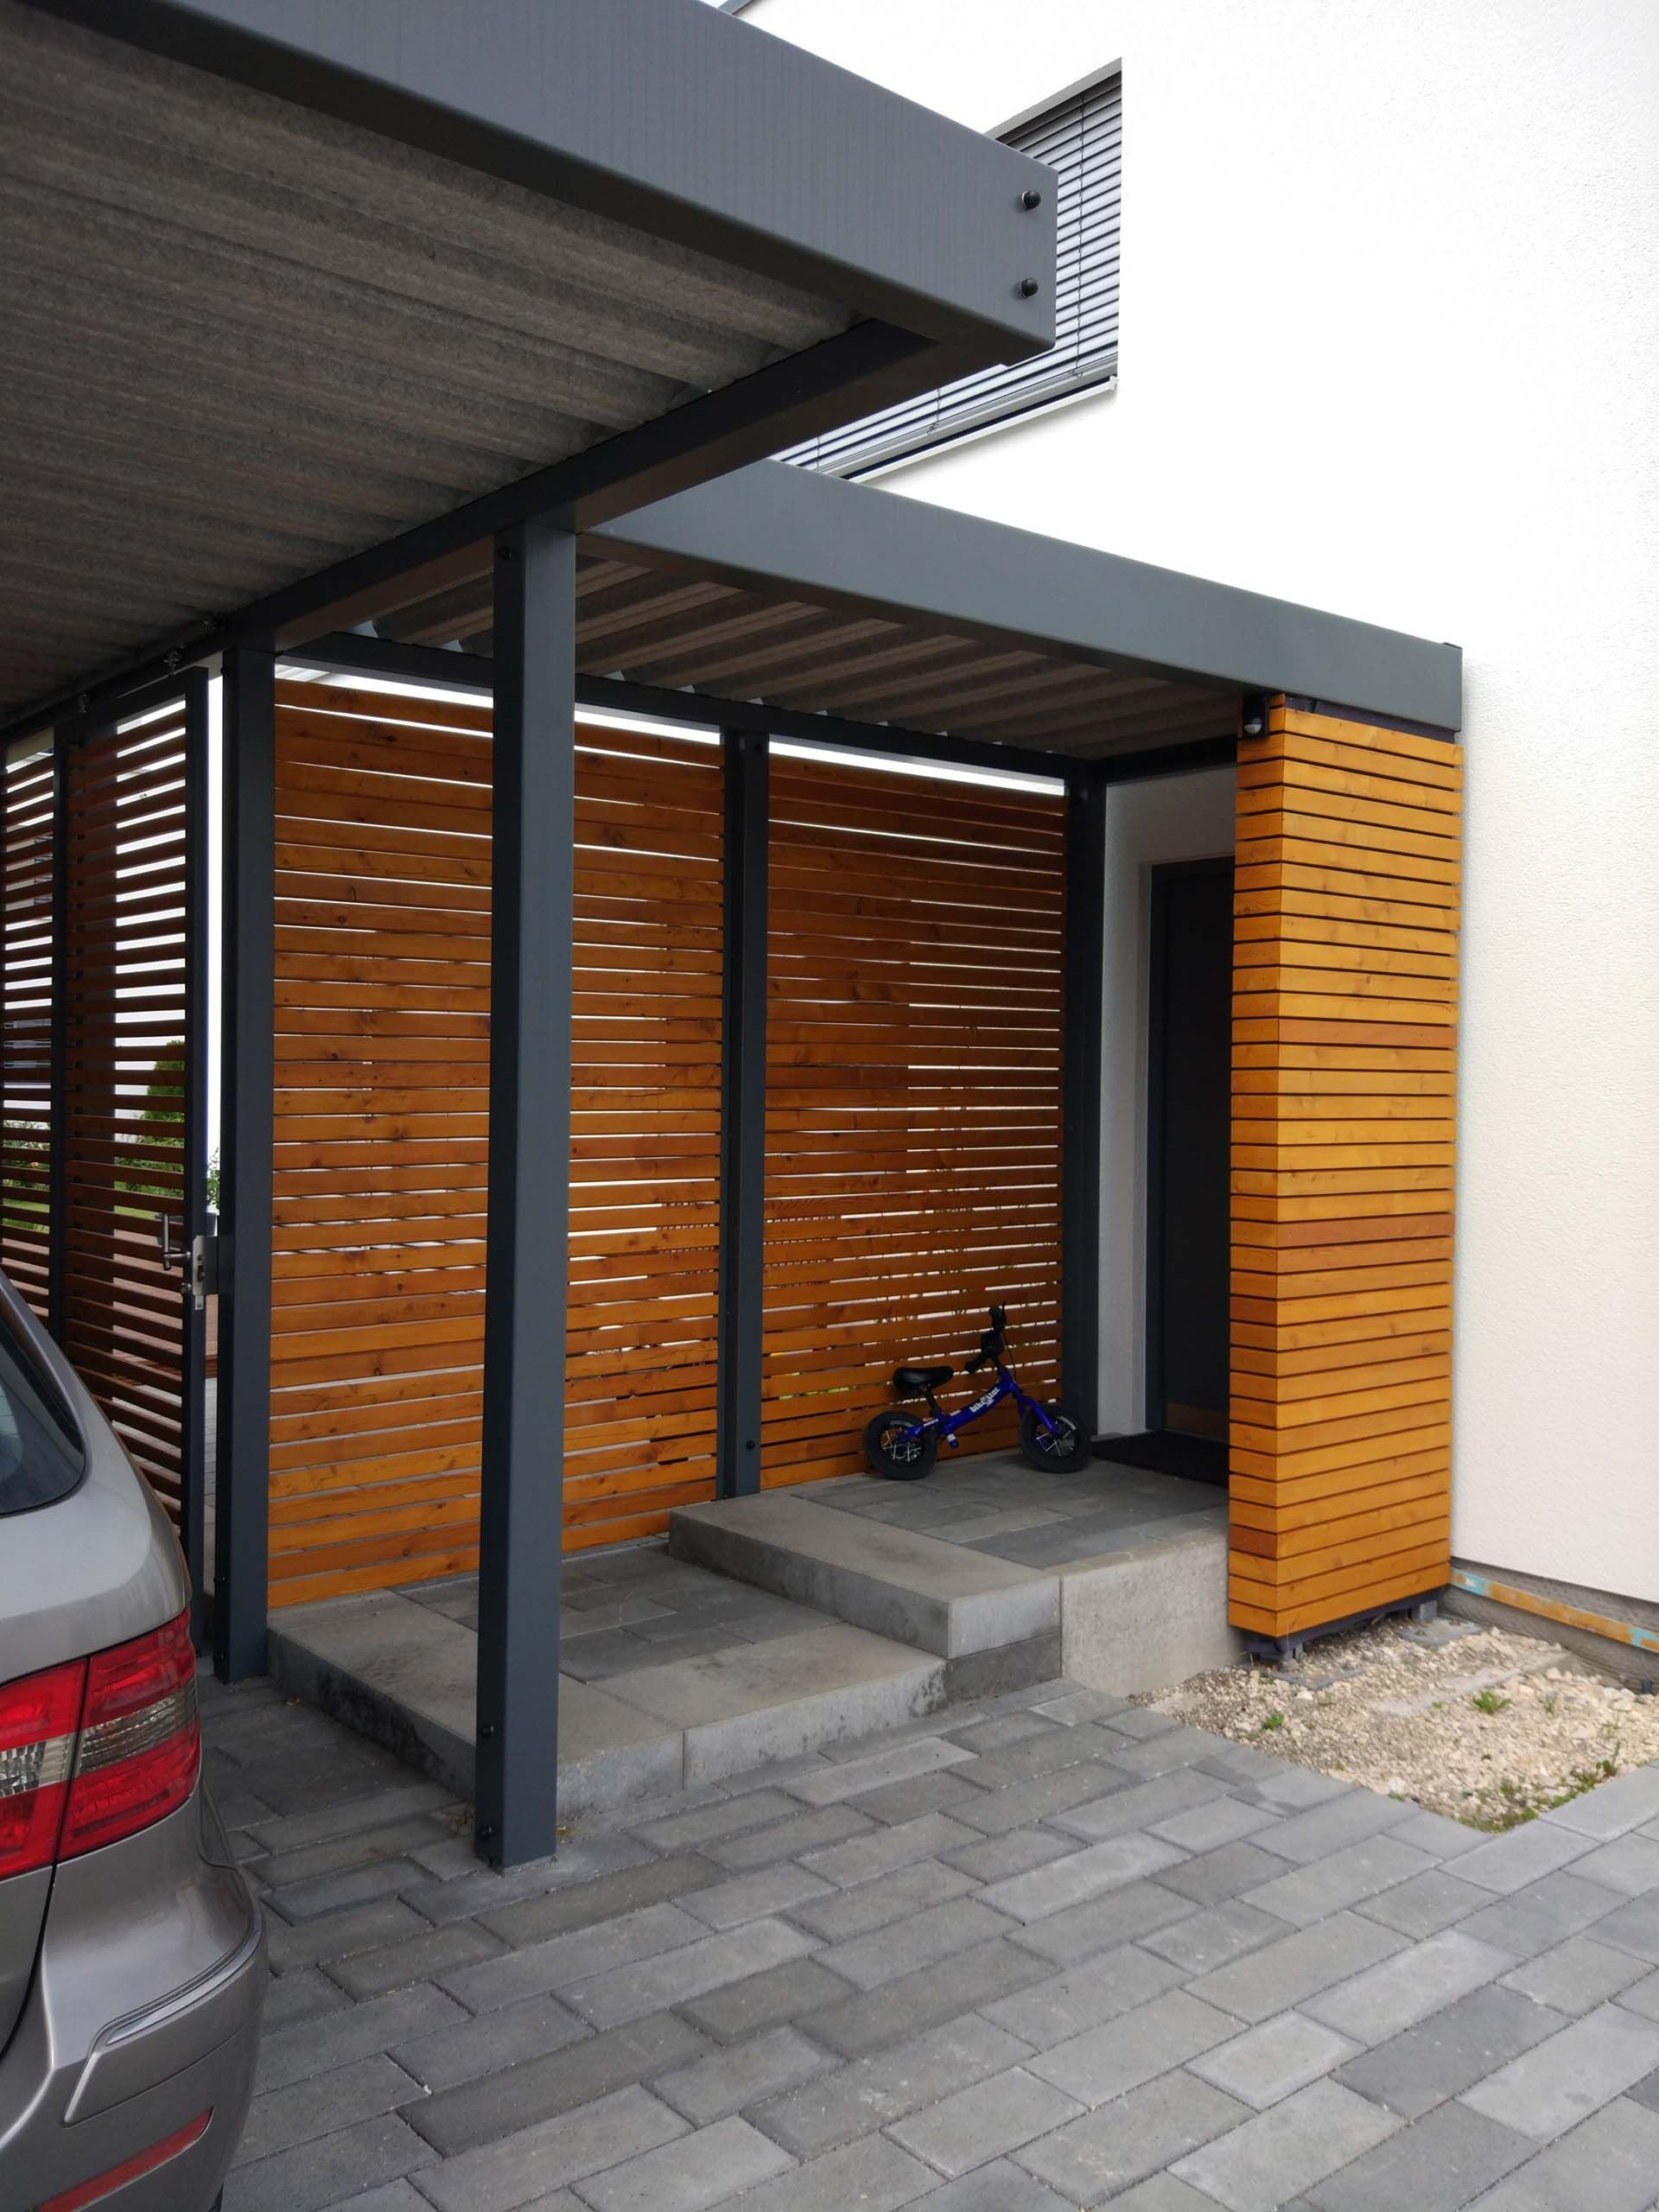 Design metall carport mit vordach aus holz stahl paris for Carport detail